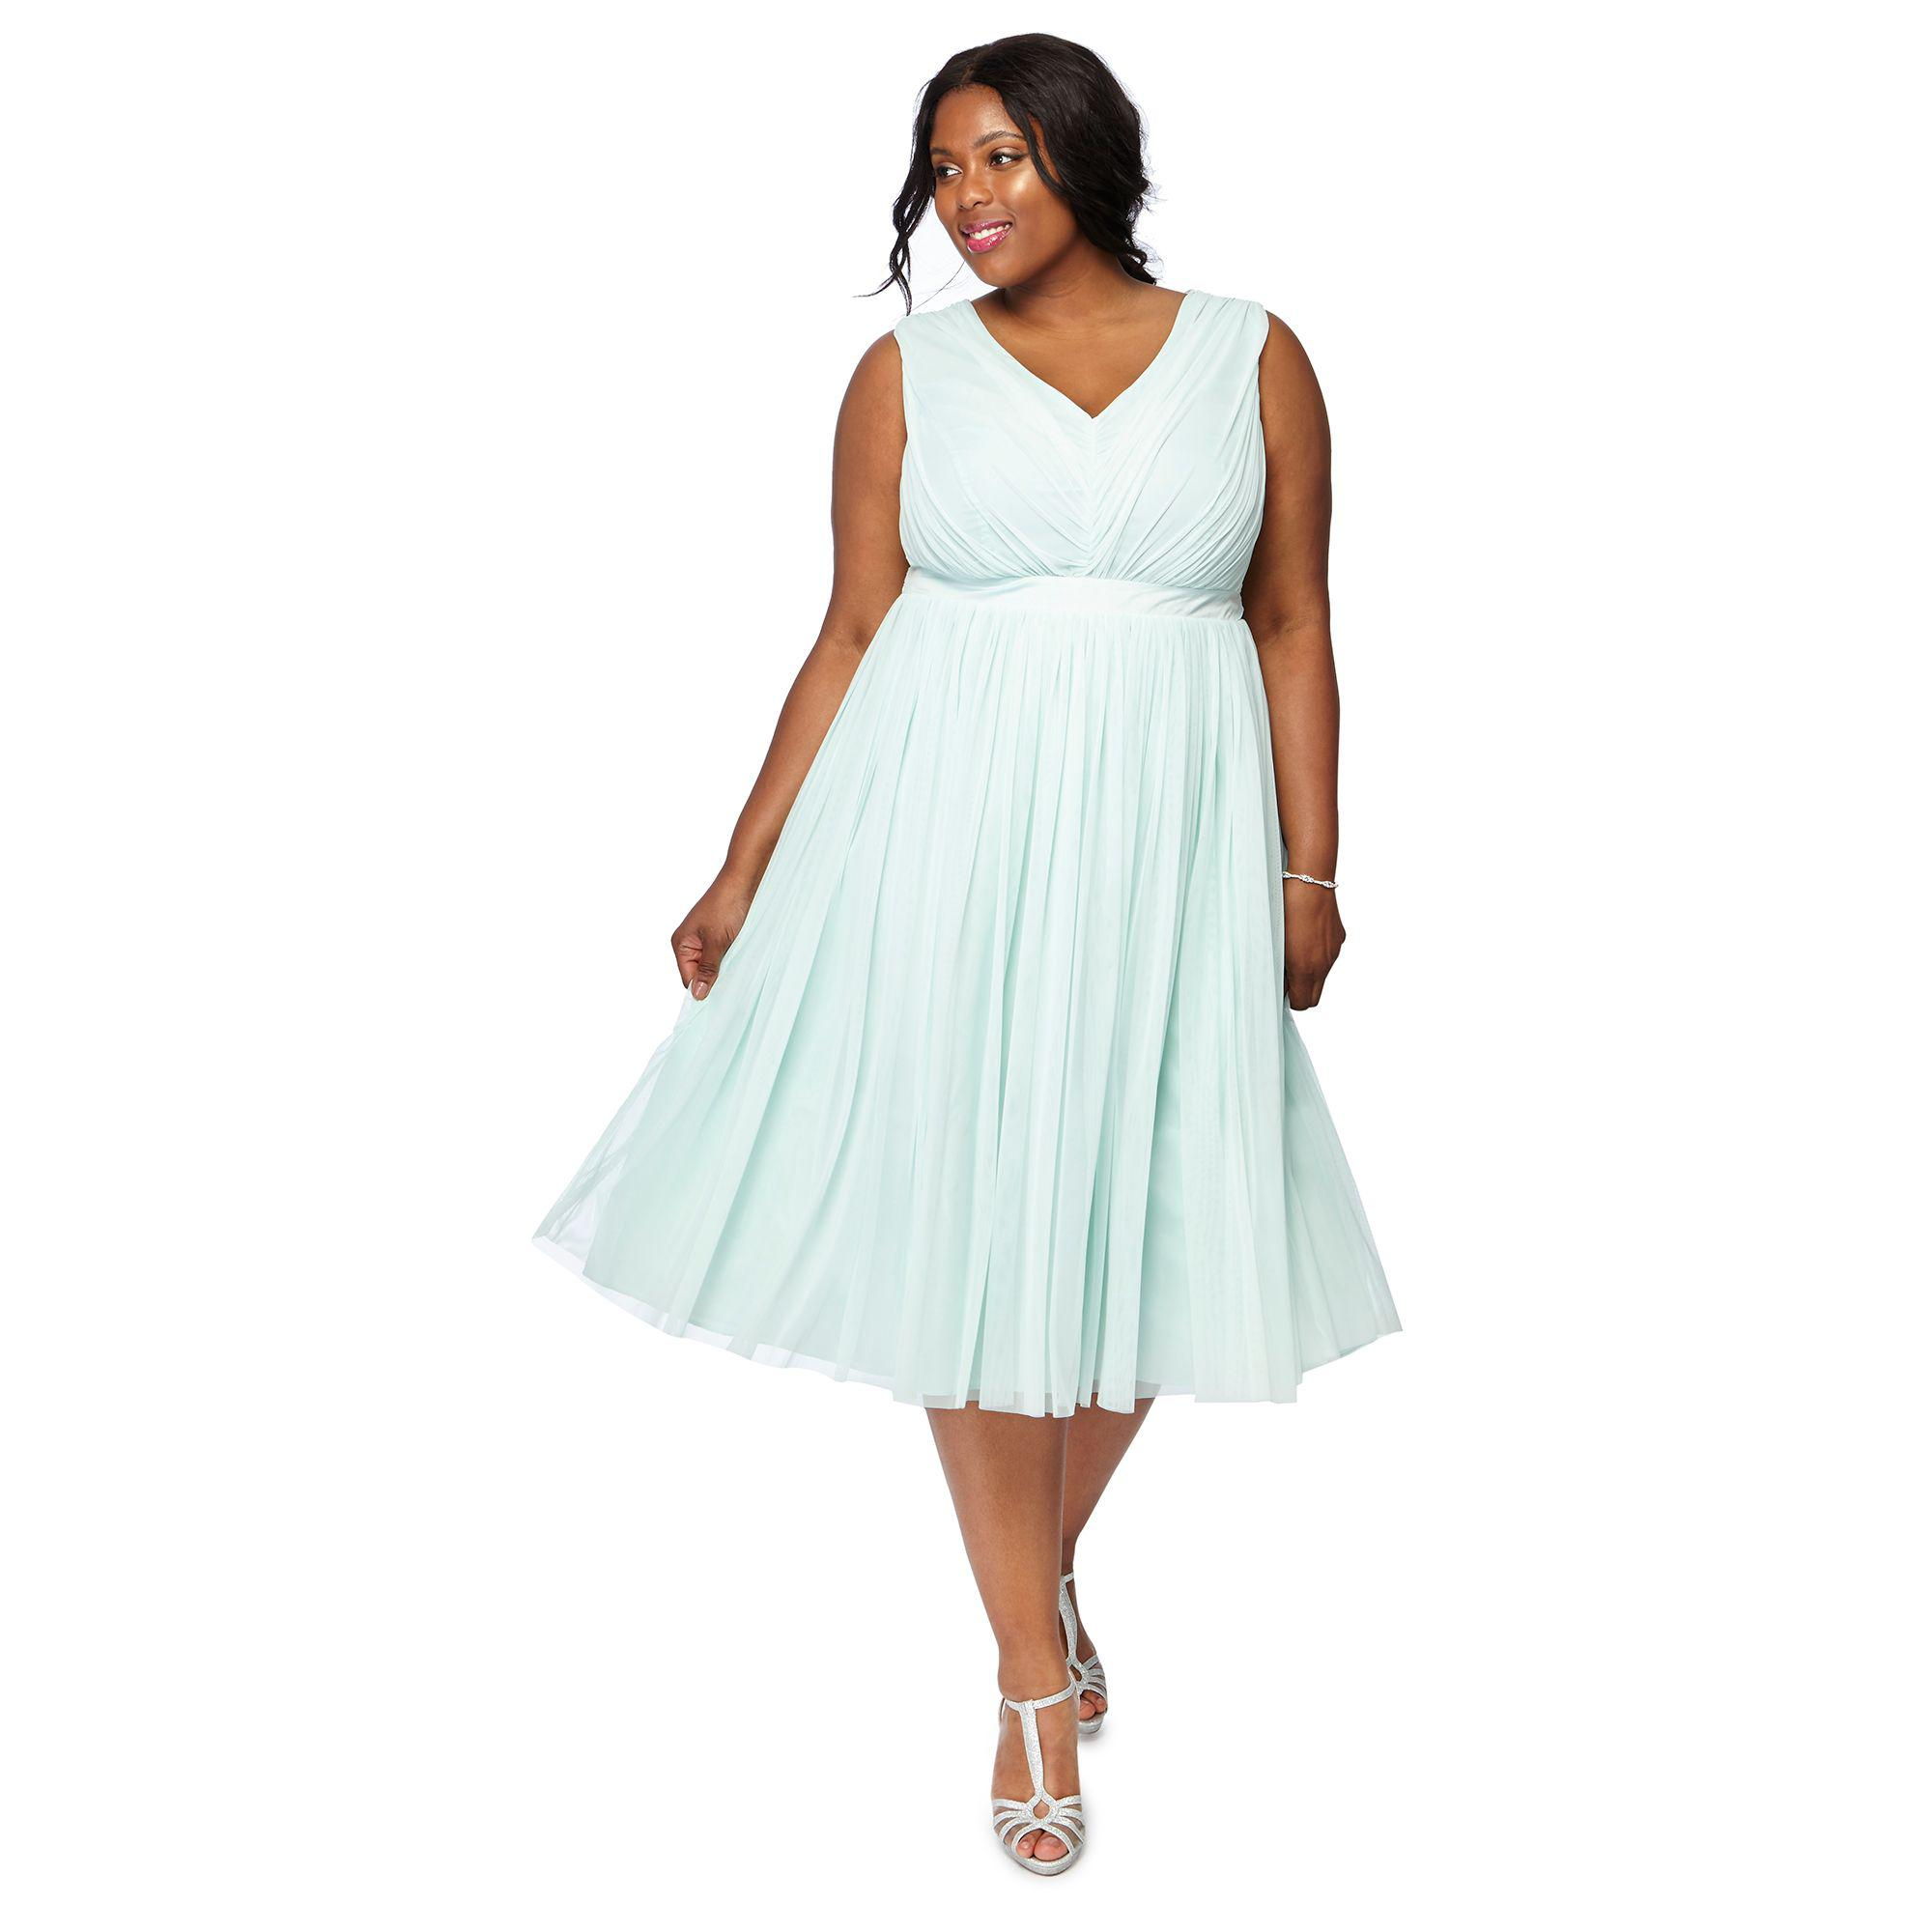 52851694363ee Début Pale Green 'mia' Mesh Plus Size Bridesmaid Dress in Green - Lyst